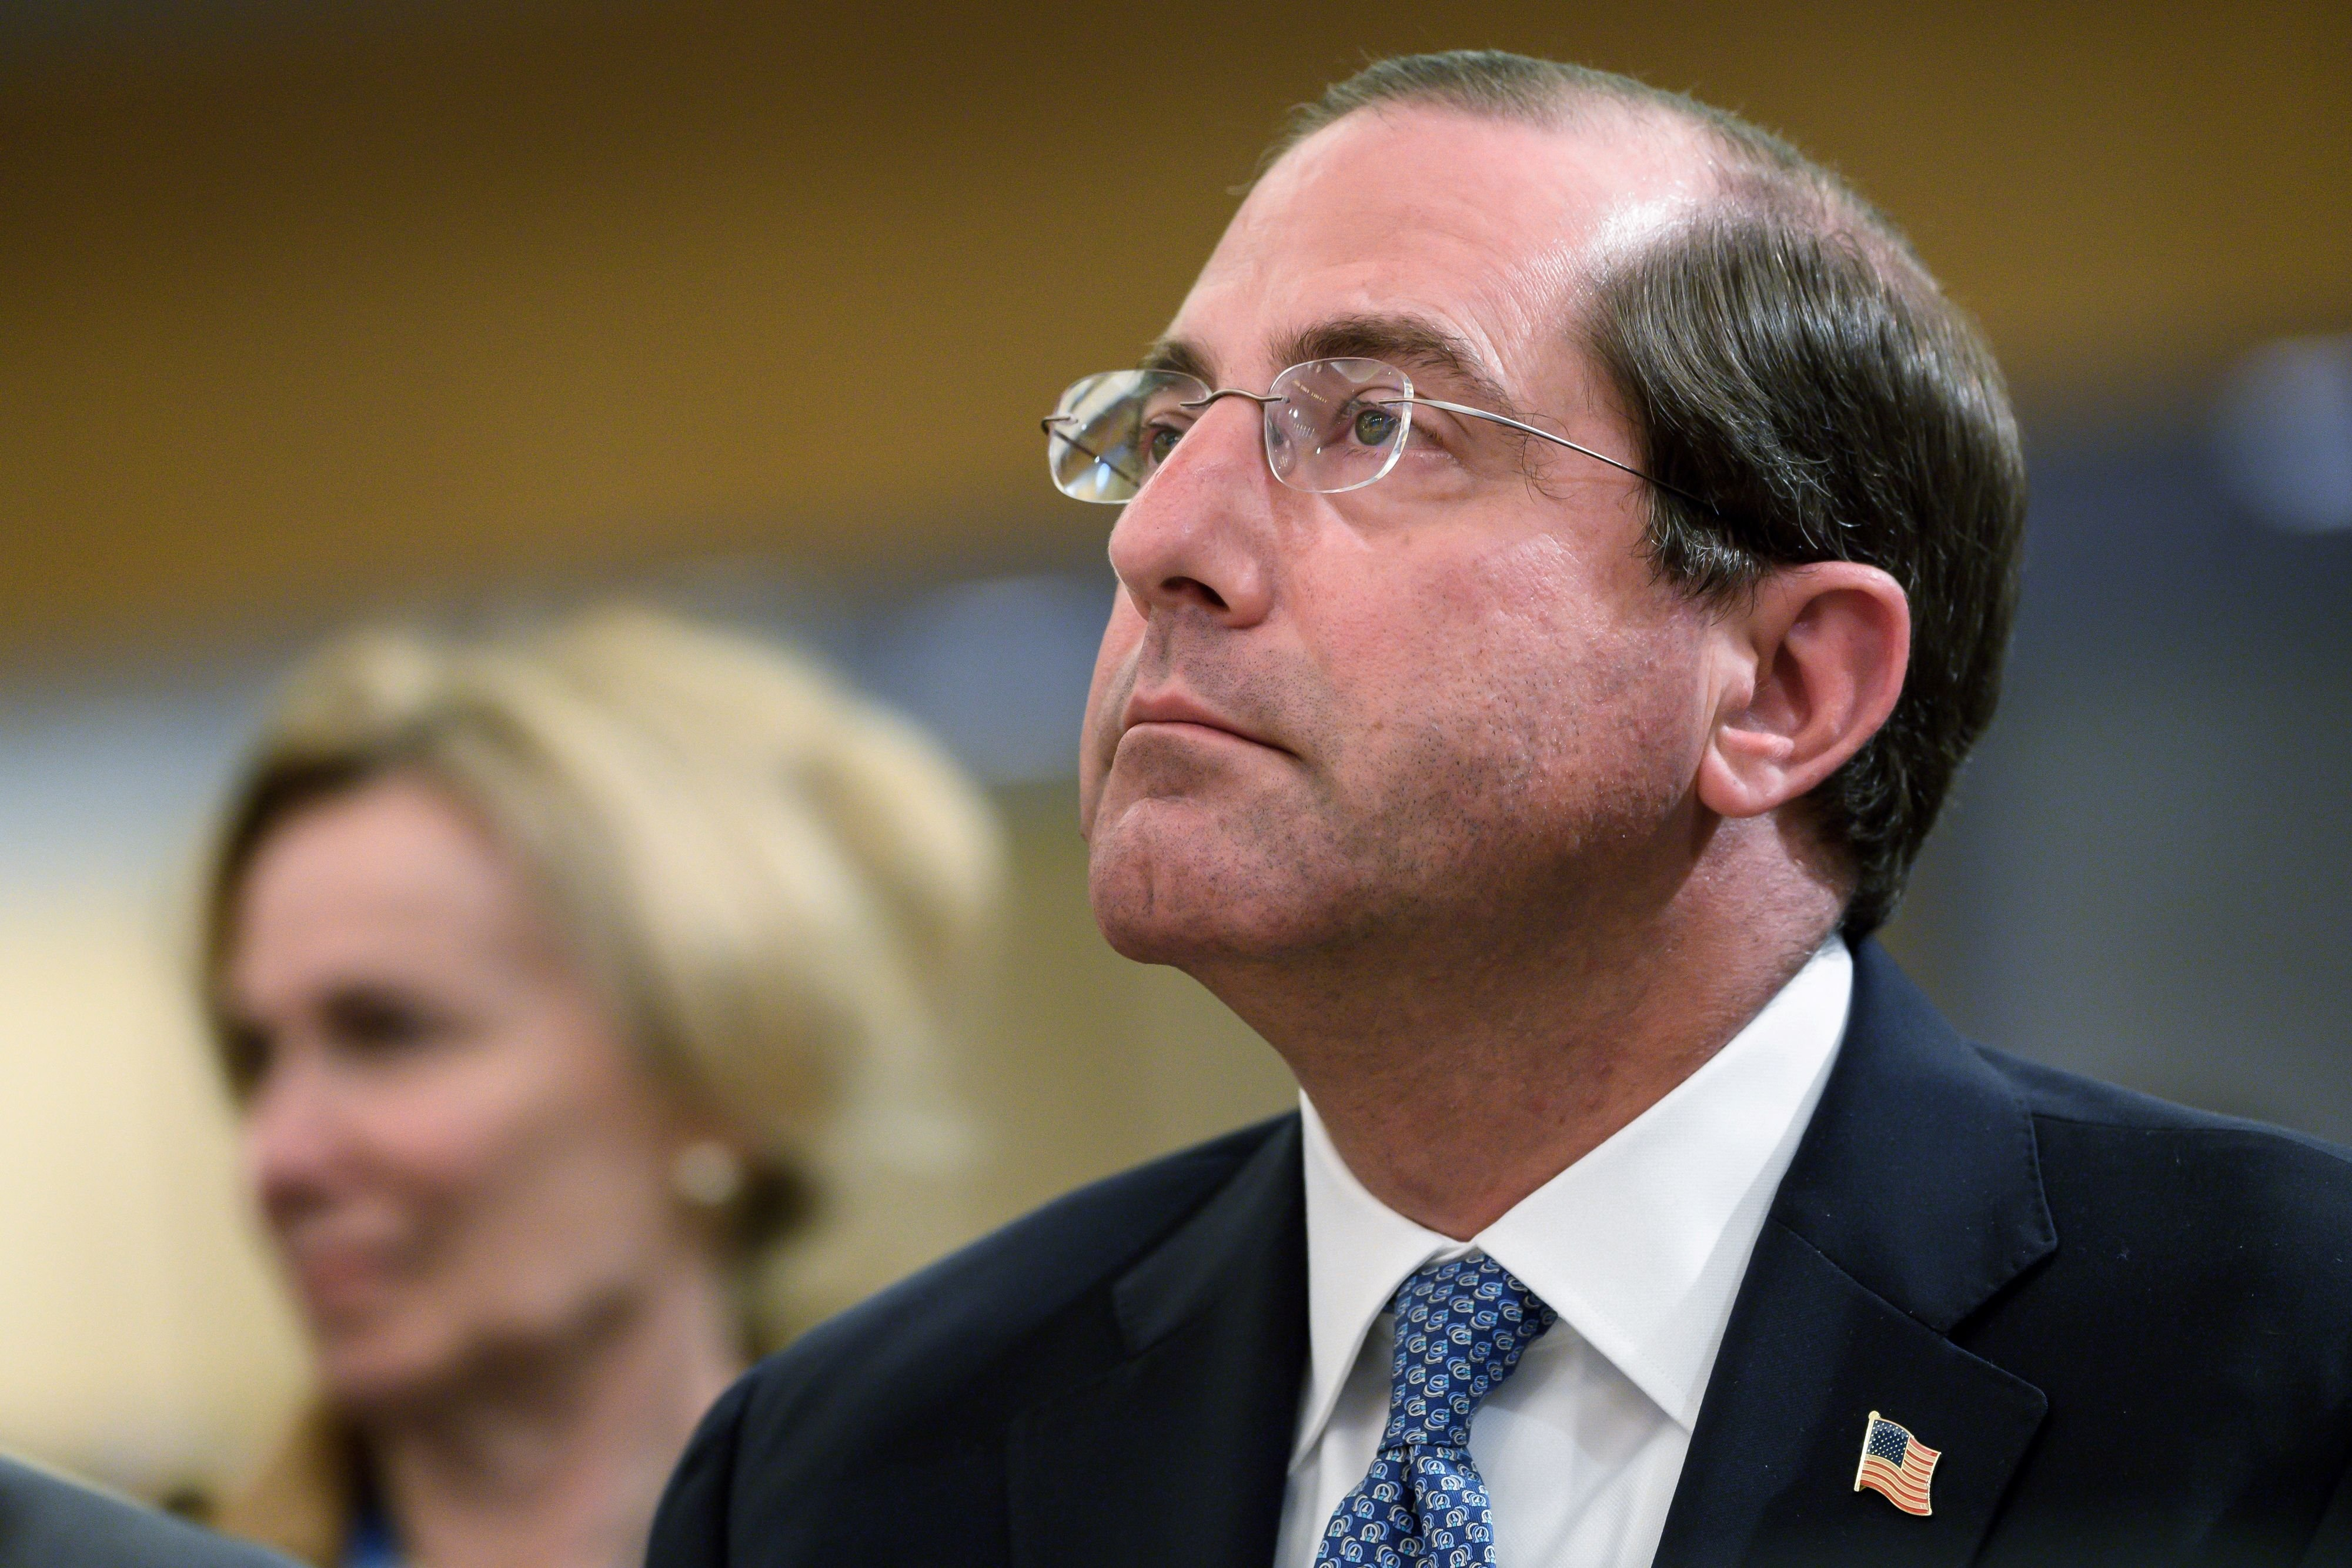 US Secretary of Health Alex Azar attends the opening day of the World health assembly on May 20, 2019 at the United Nations Offices in Geneva. (FABRICE COFFRINI/AFP/Getty Images)